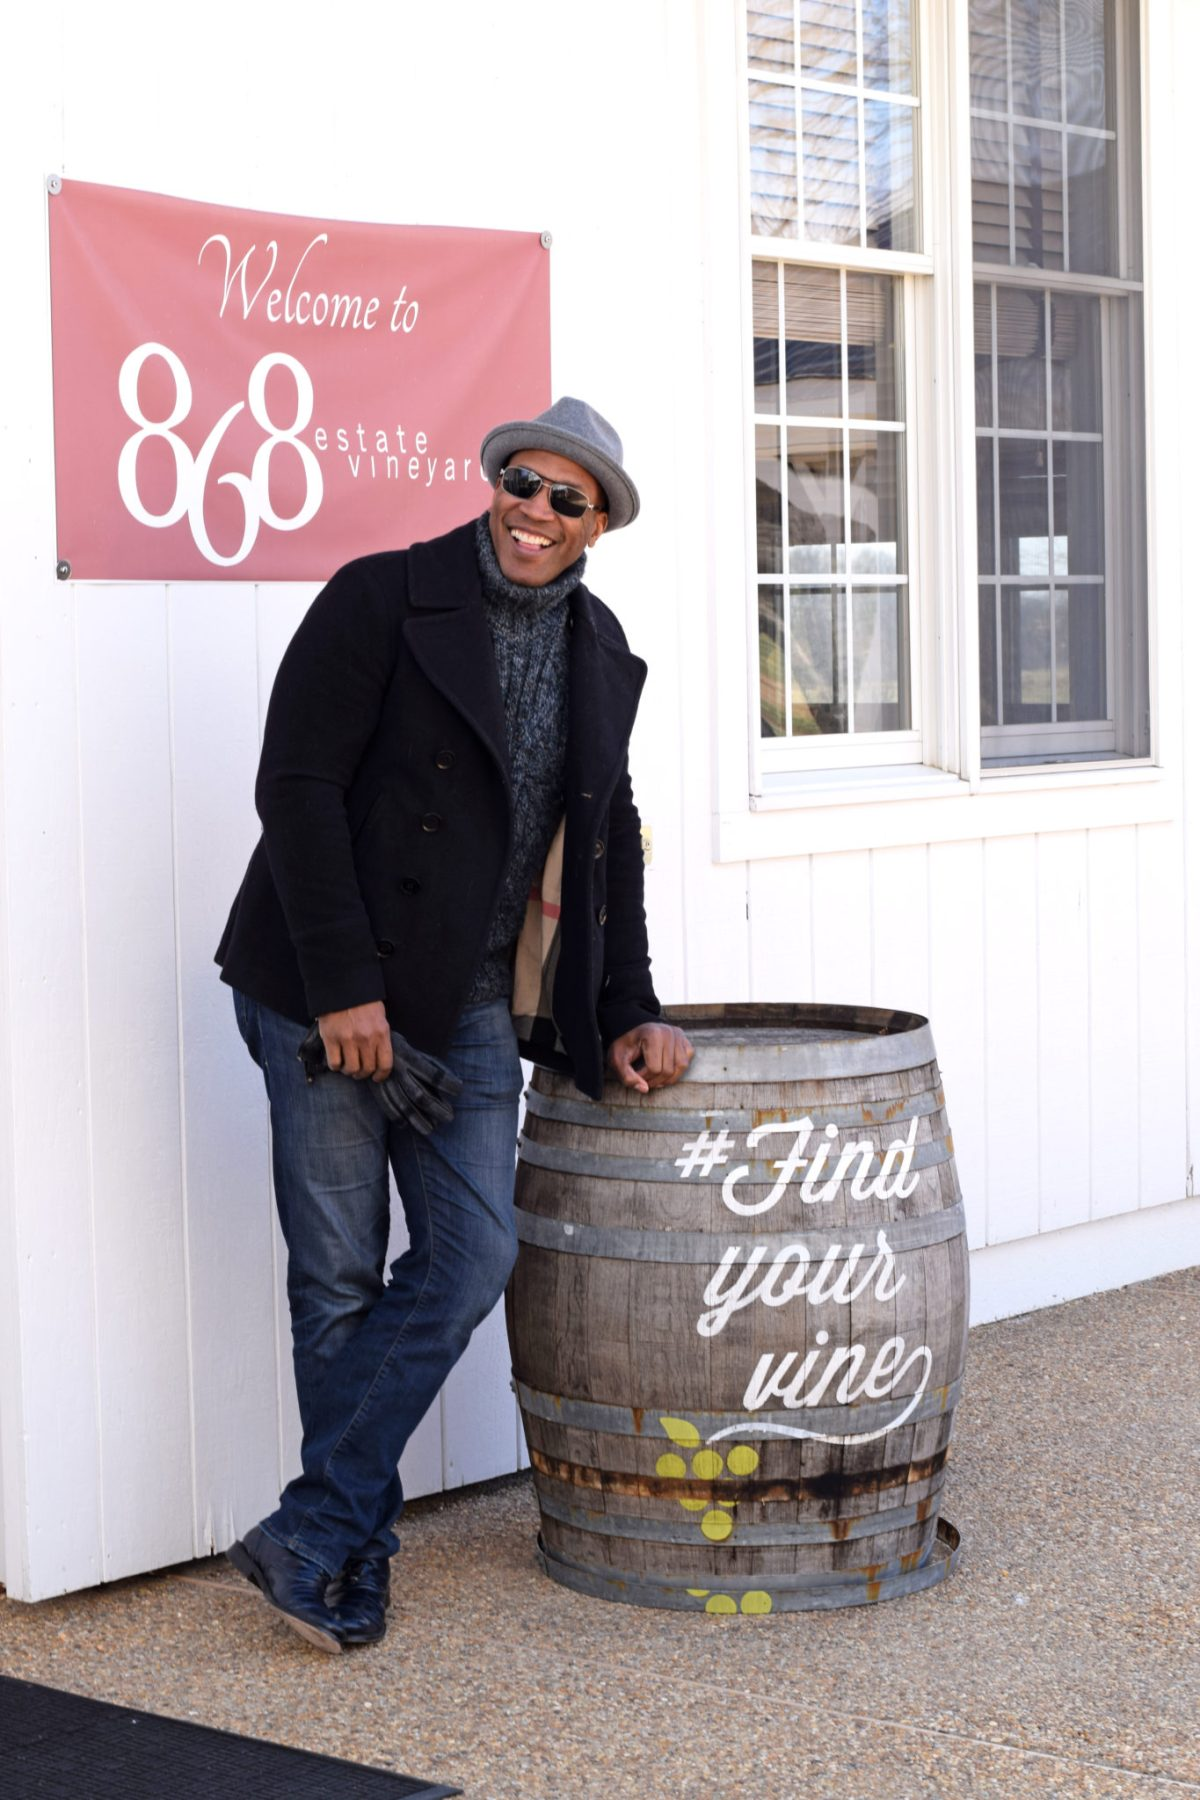 Classic style in wine country - smiling at 868 winery